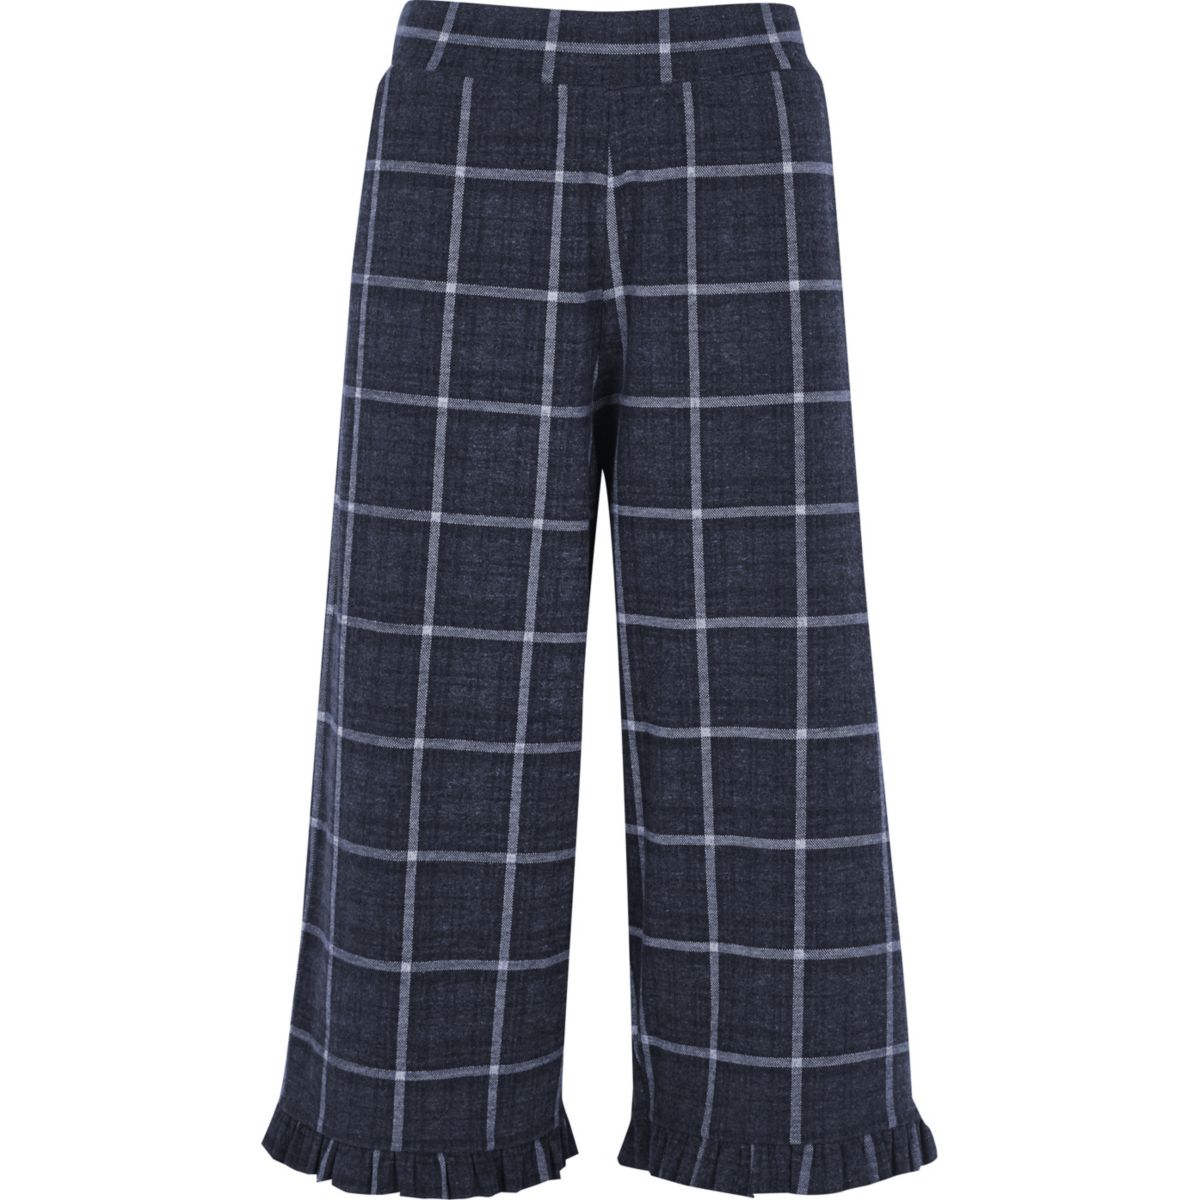 Dark grey check frill hem culottes